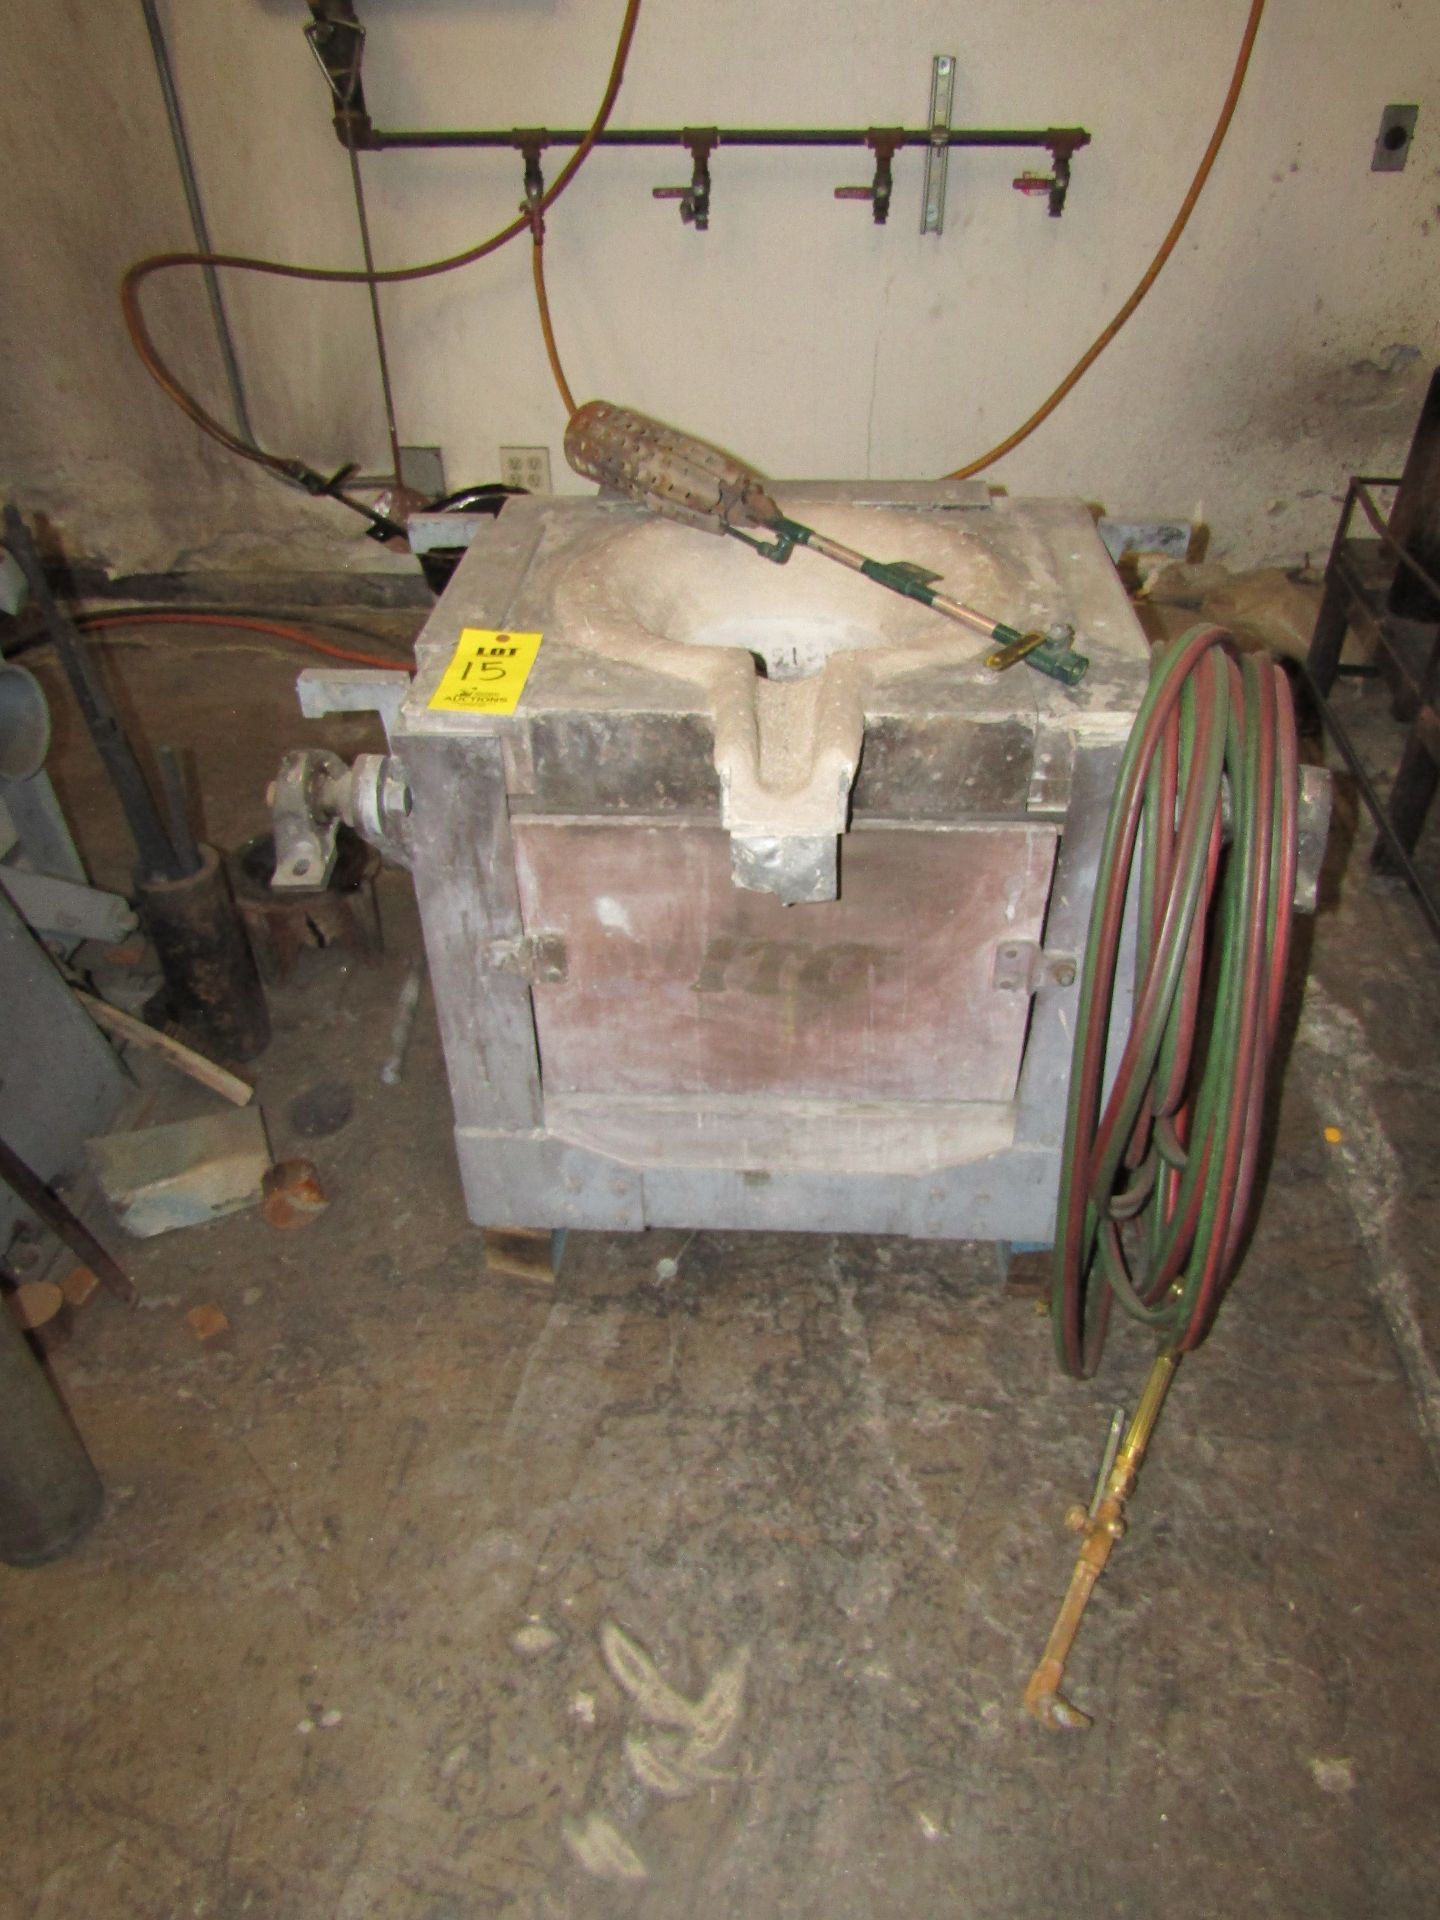 Lot 15 - ITC Induction Furnace #2 With Acetylene Hoses and Torch (ITC Induction Furnace System 3/4)